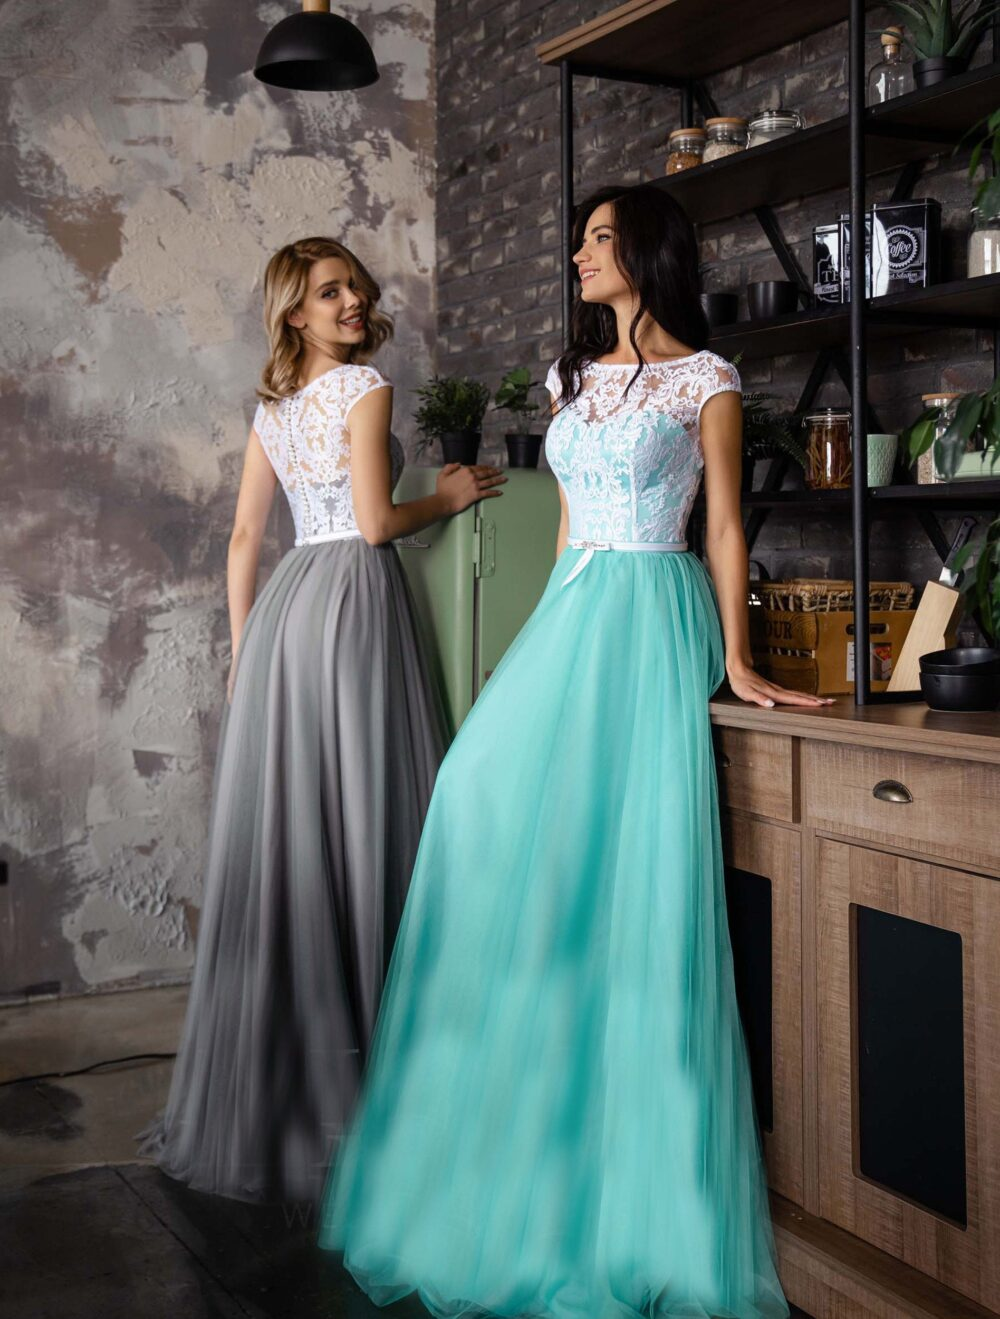 Simple Prom Dress, Evening Gown, Luxury Women Party Fairy A-Line Cocktail Soft Romantic Dress